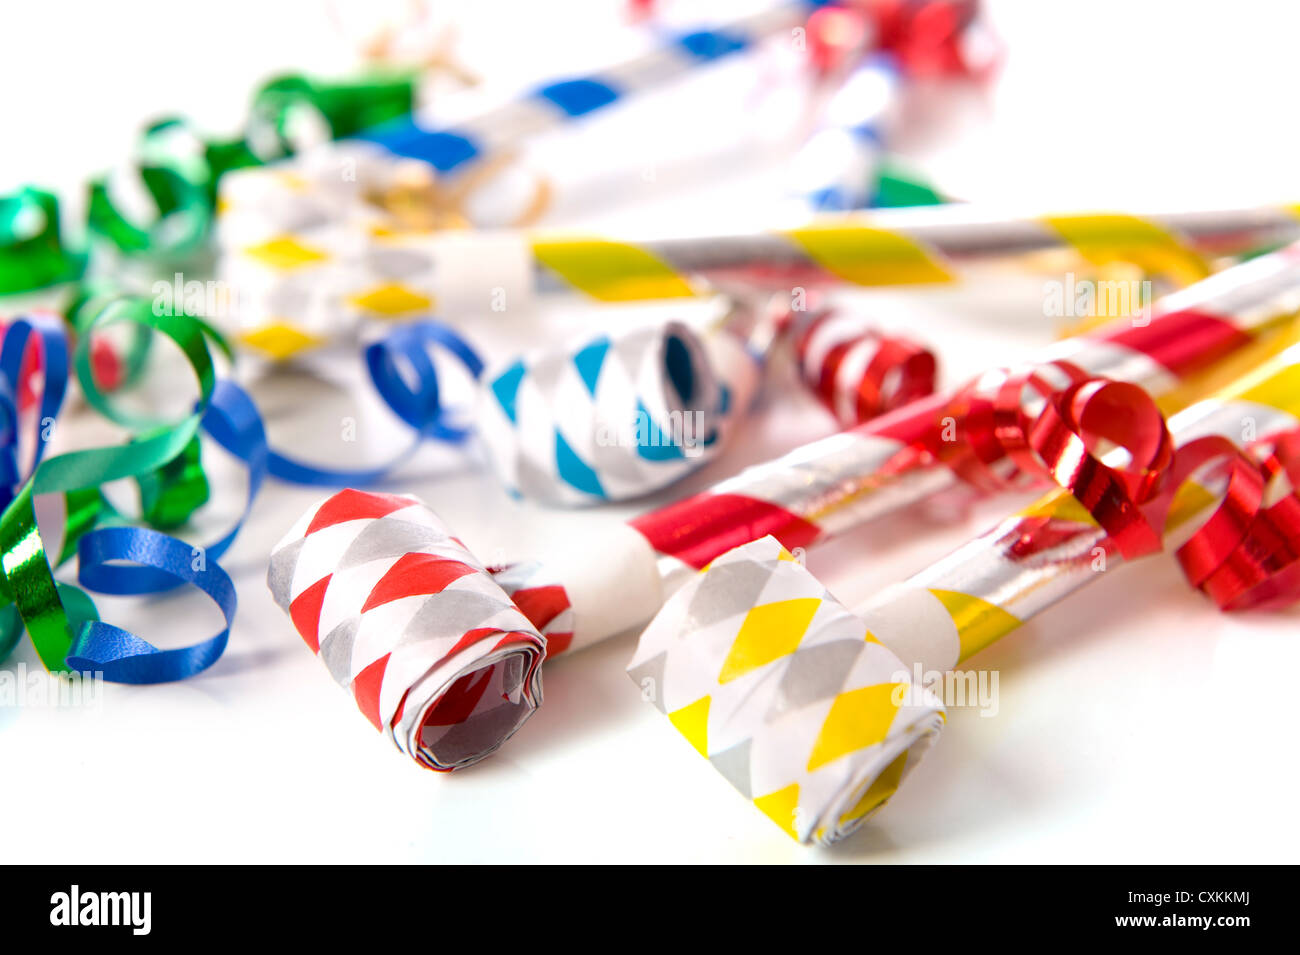 A group of party items, noisemakers and ribbons, on a white background, New Years theme - Stock Image